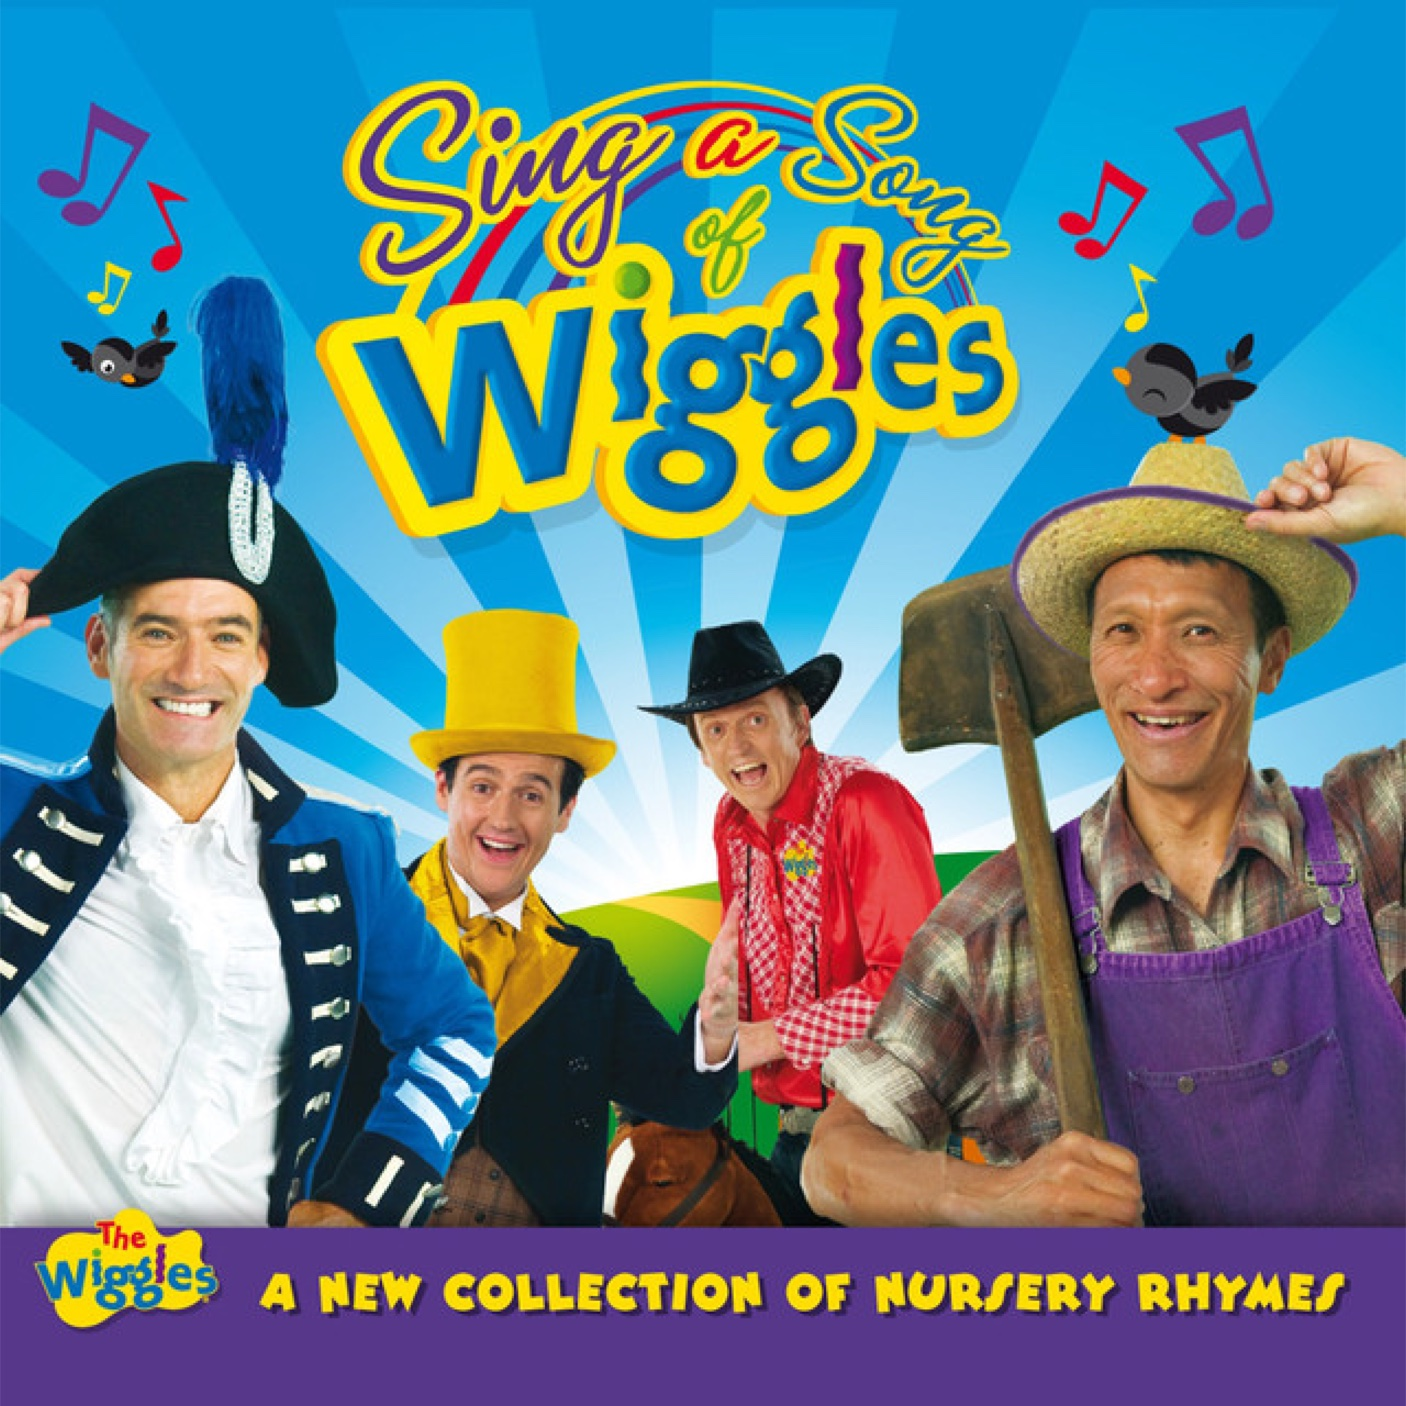 Sing a Song of Wiggles (album)